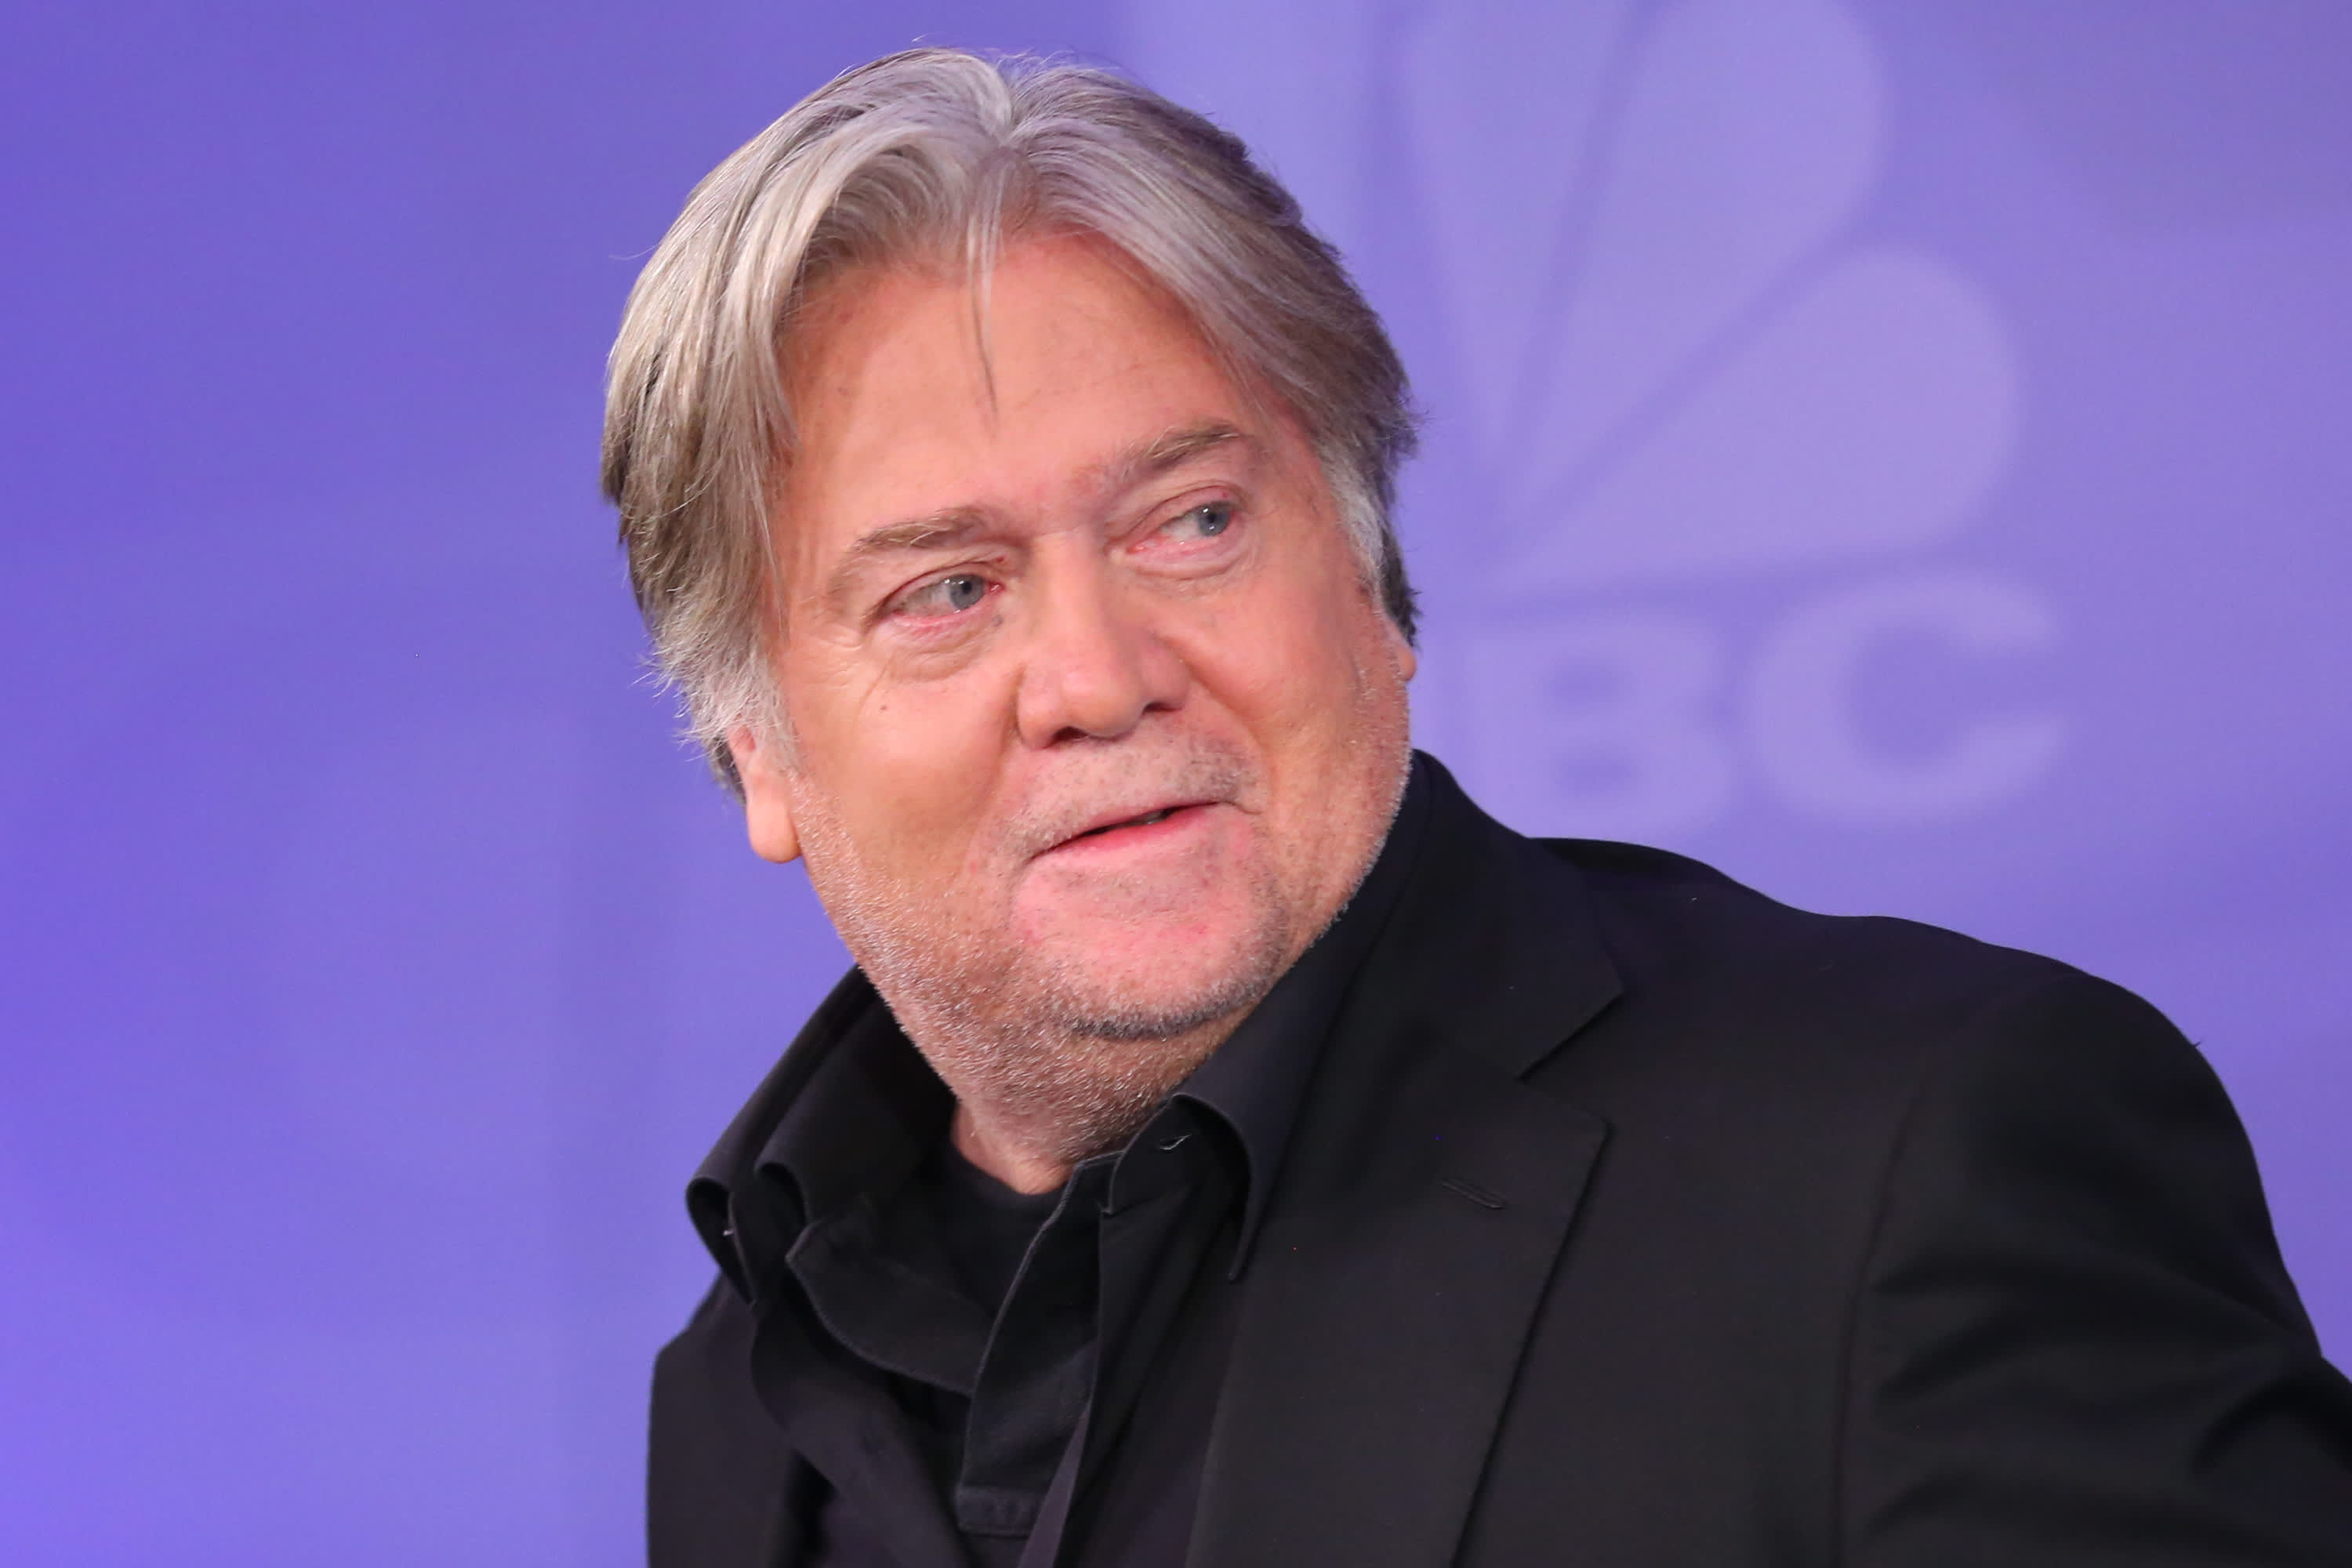 Steve Bannon on impeachment: Trump is not just looking for a Senate acquittal but exoneration